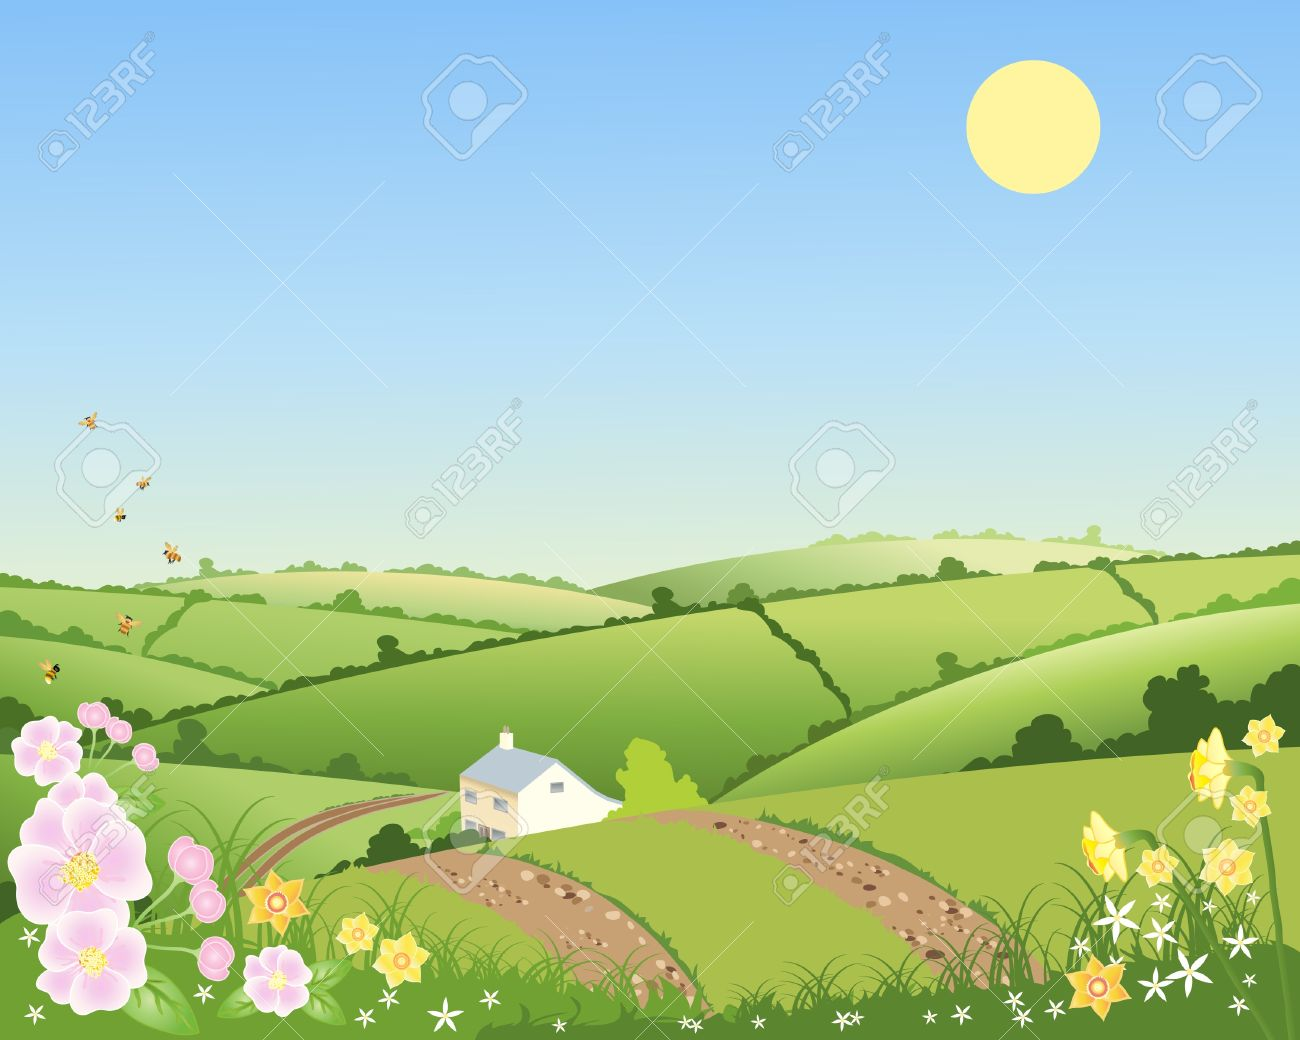 Rolling hills clipart.